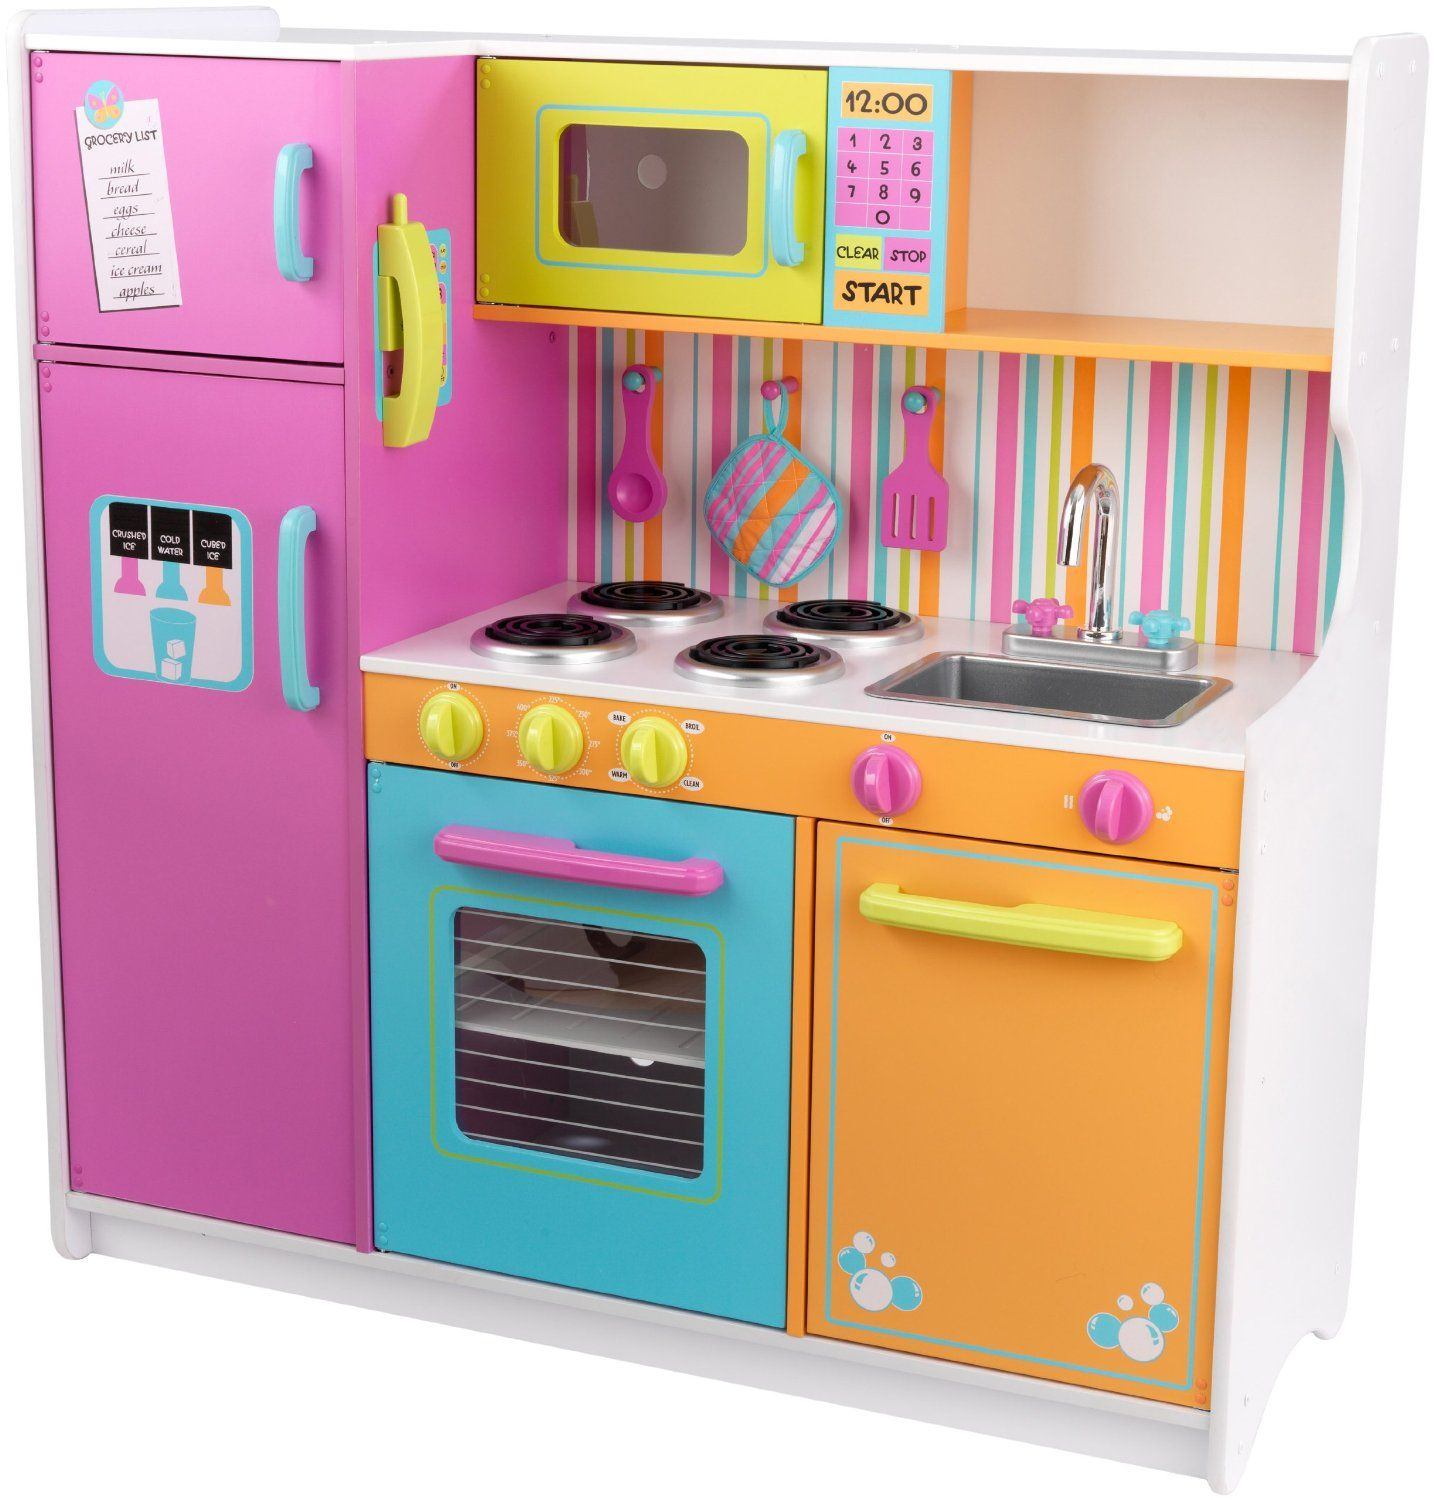 Wooden Play Kitchens For Toddlers